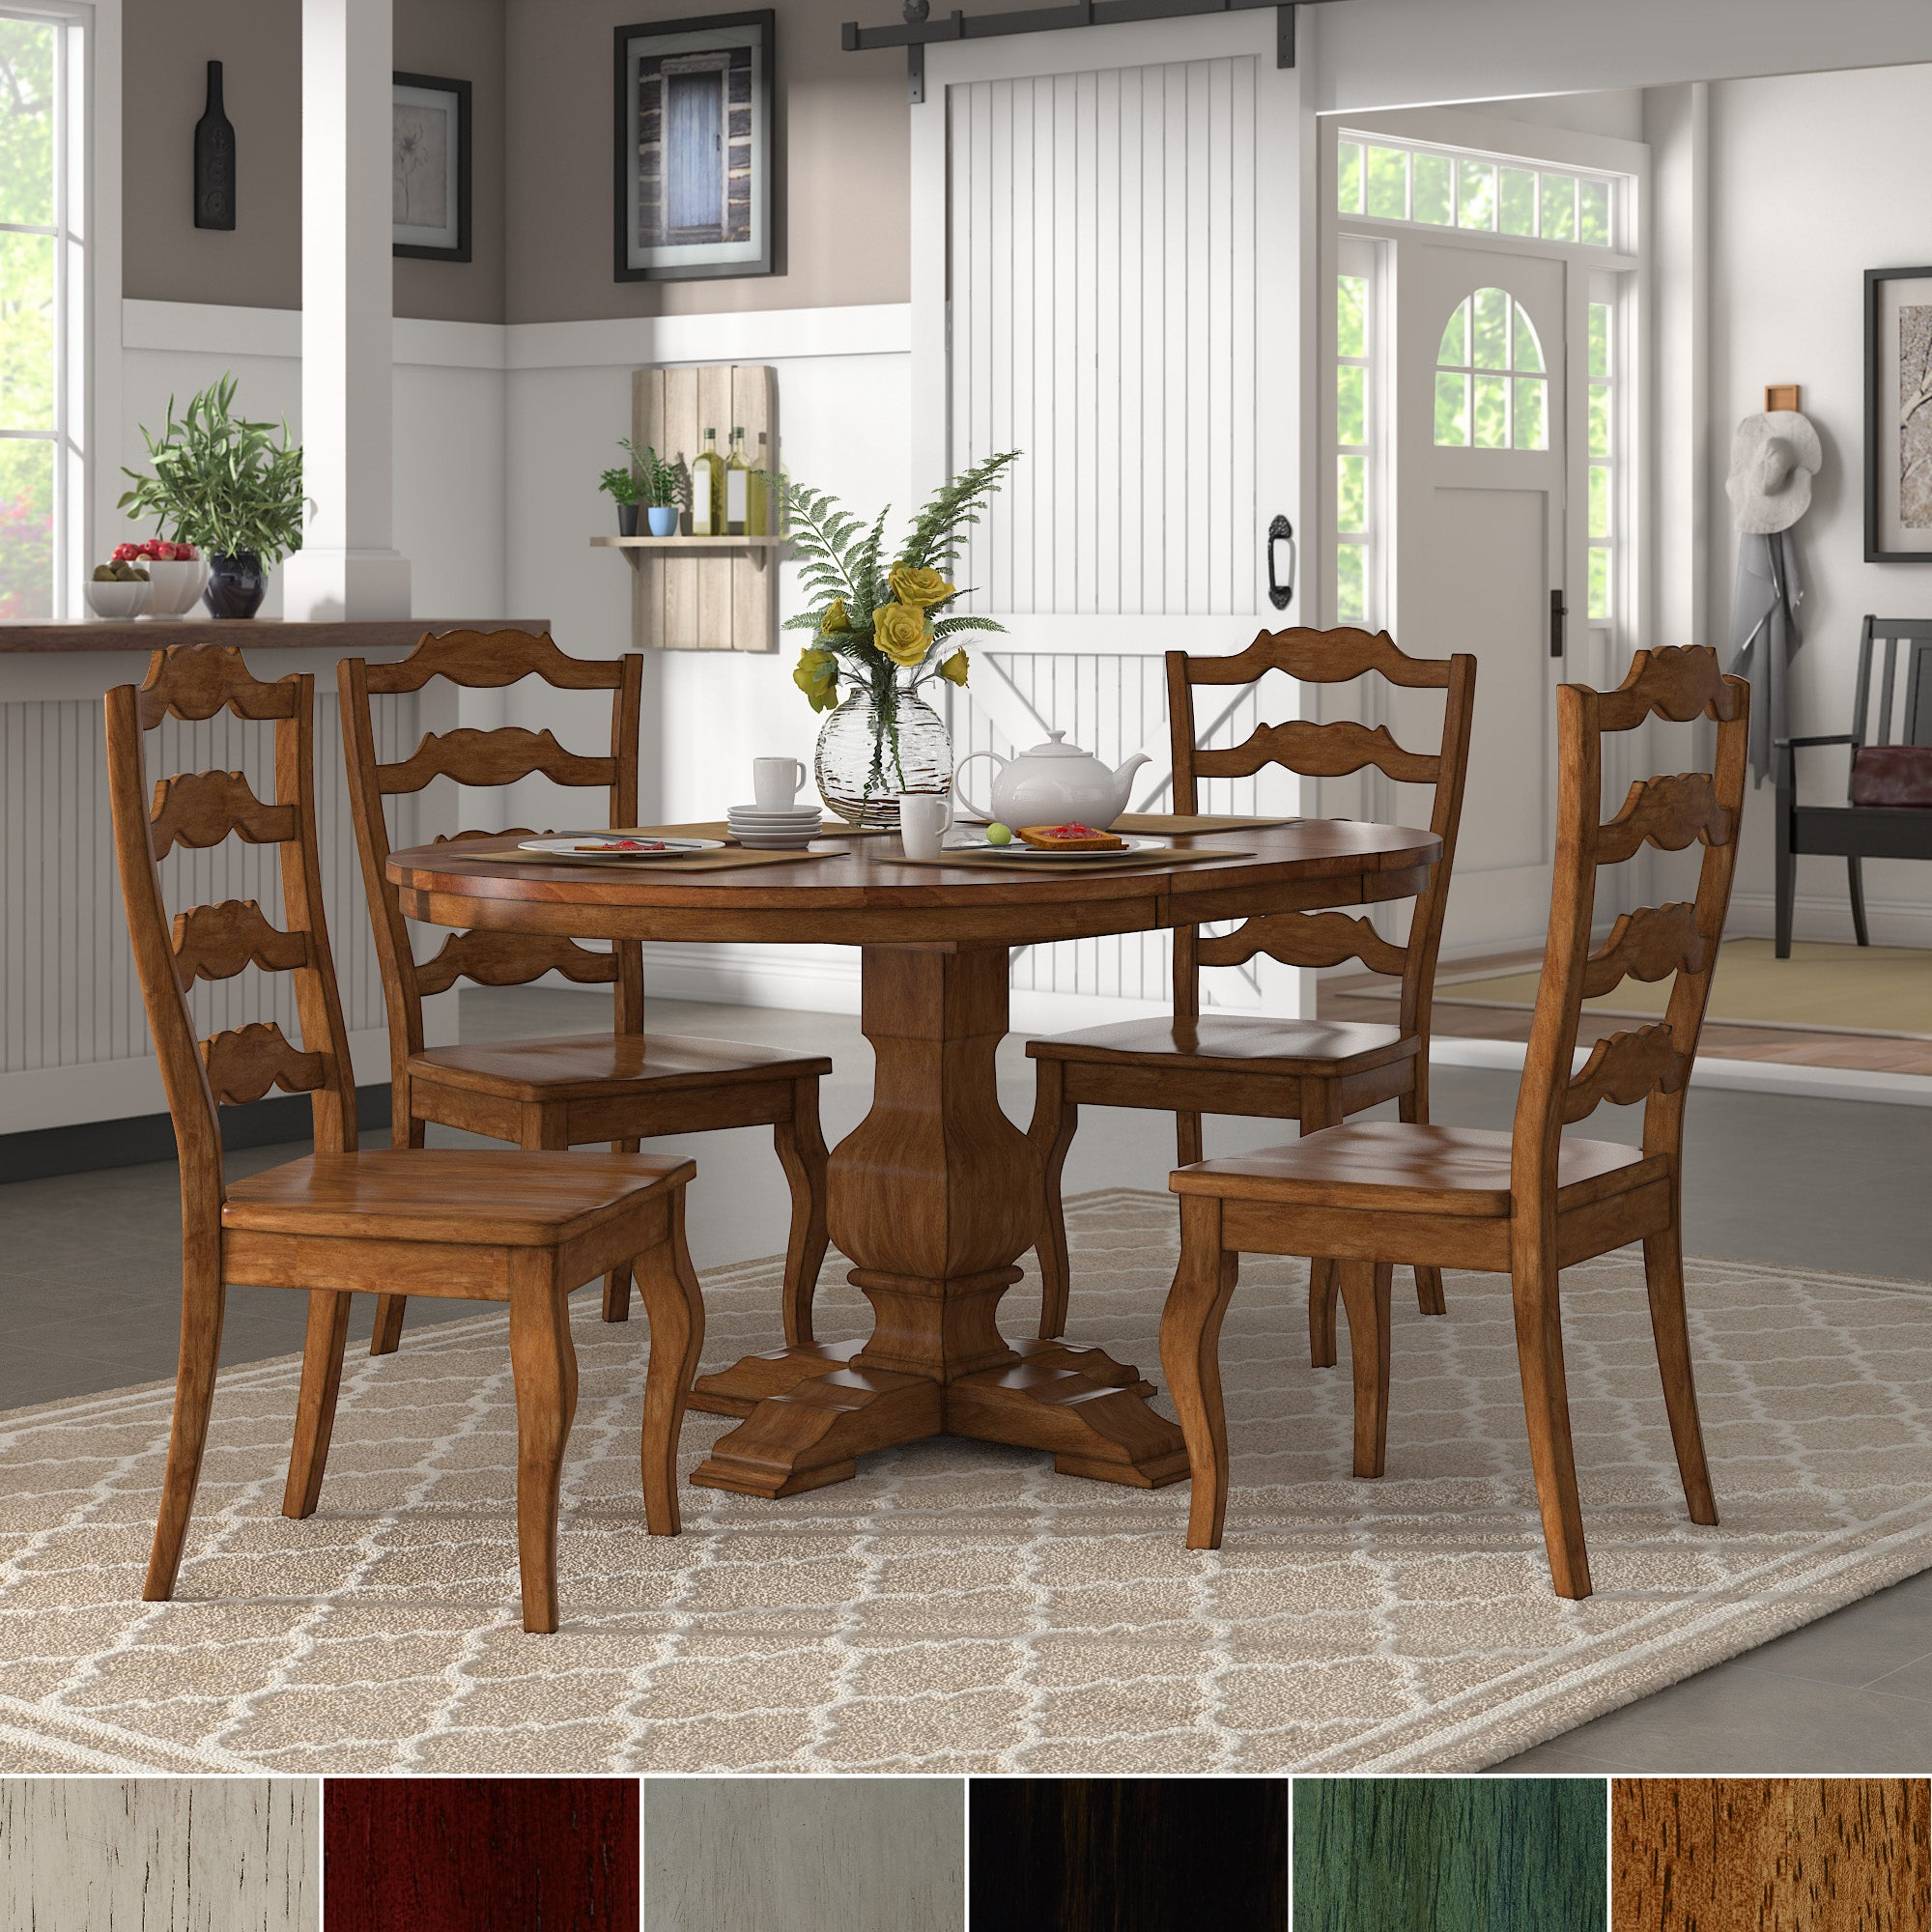 Eleanor Oak Extending Oval Wood Table French Back 5 Piece Dining Set Inspire Q Classic For Well Liked Rustic Brown Lorraine Pedestal Extending Dining Tables (View 19 of 25)